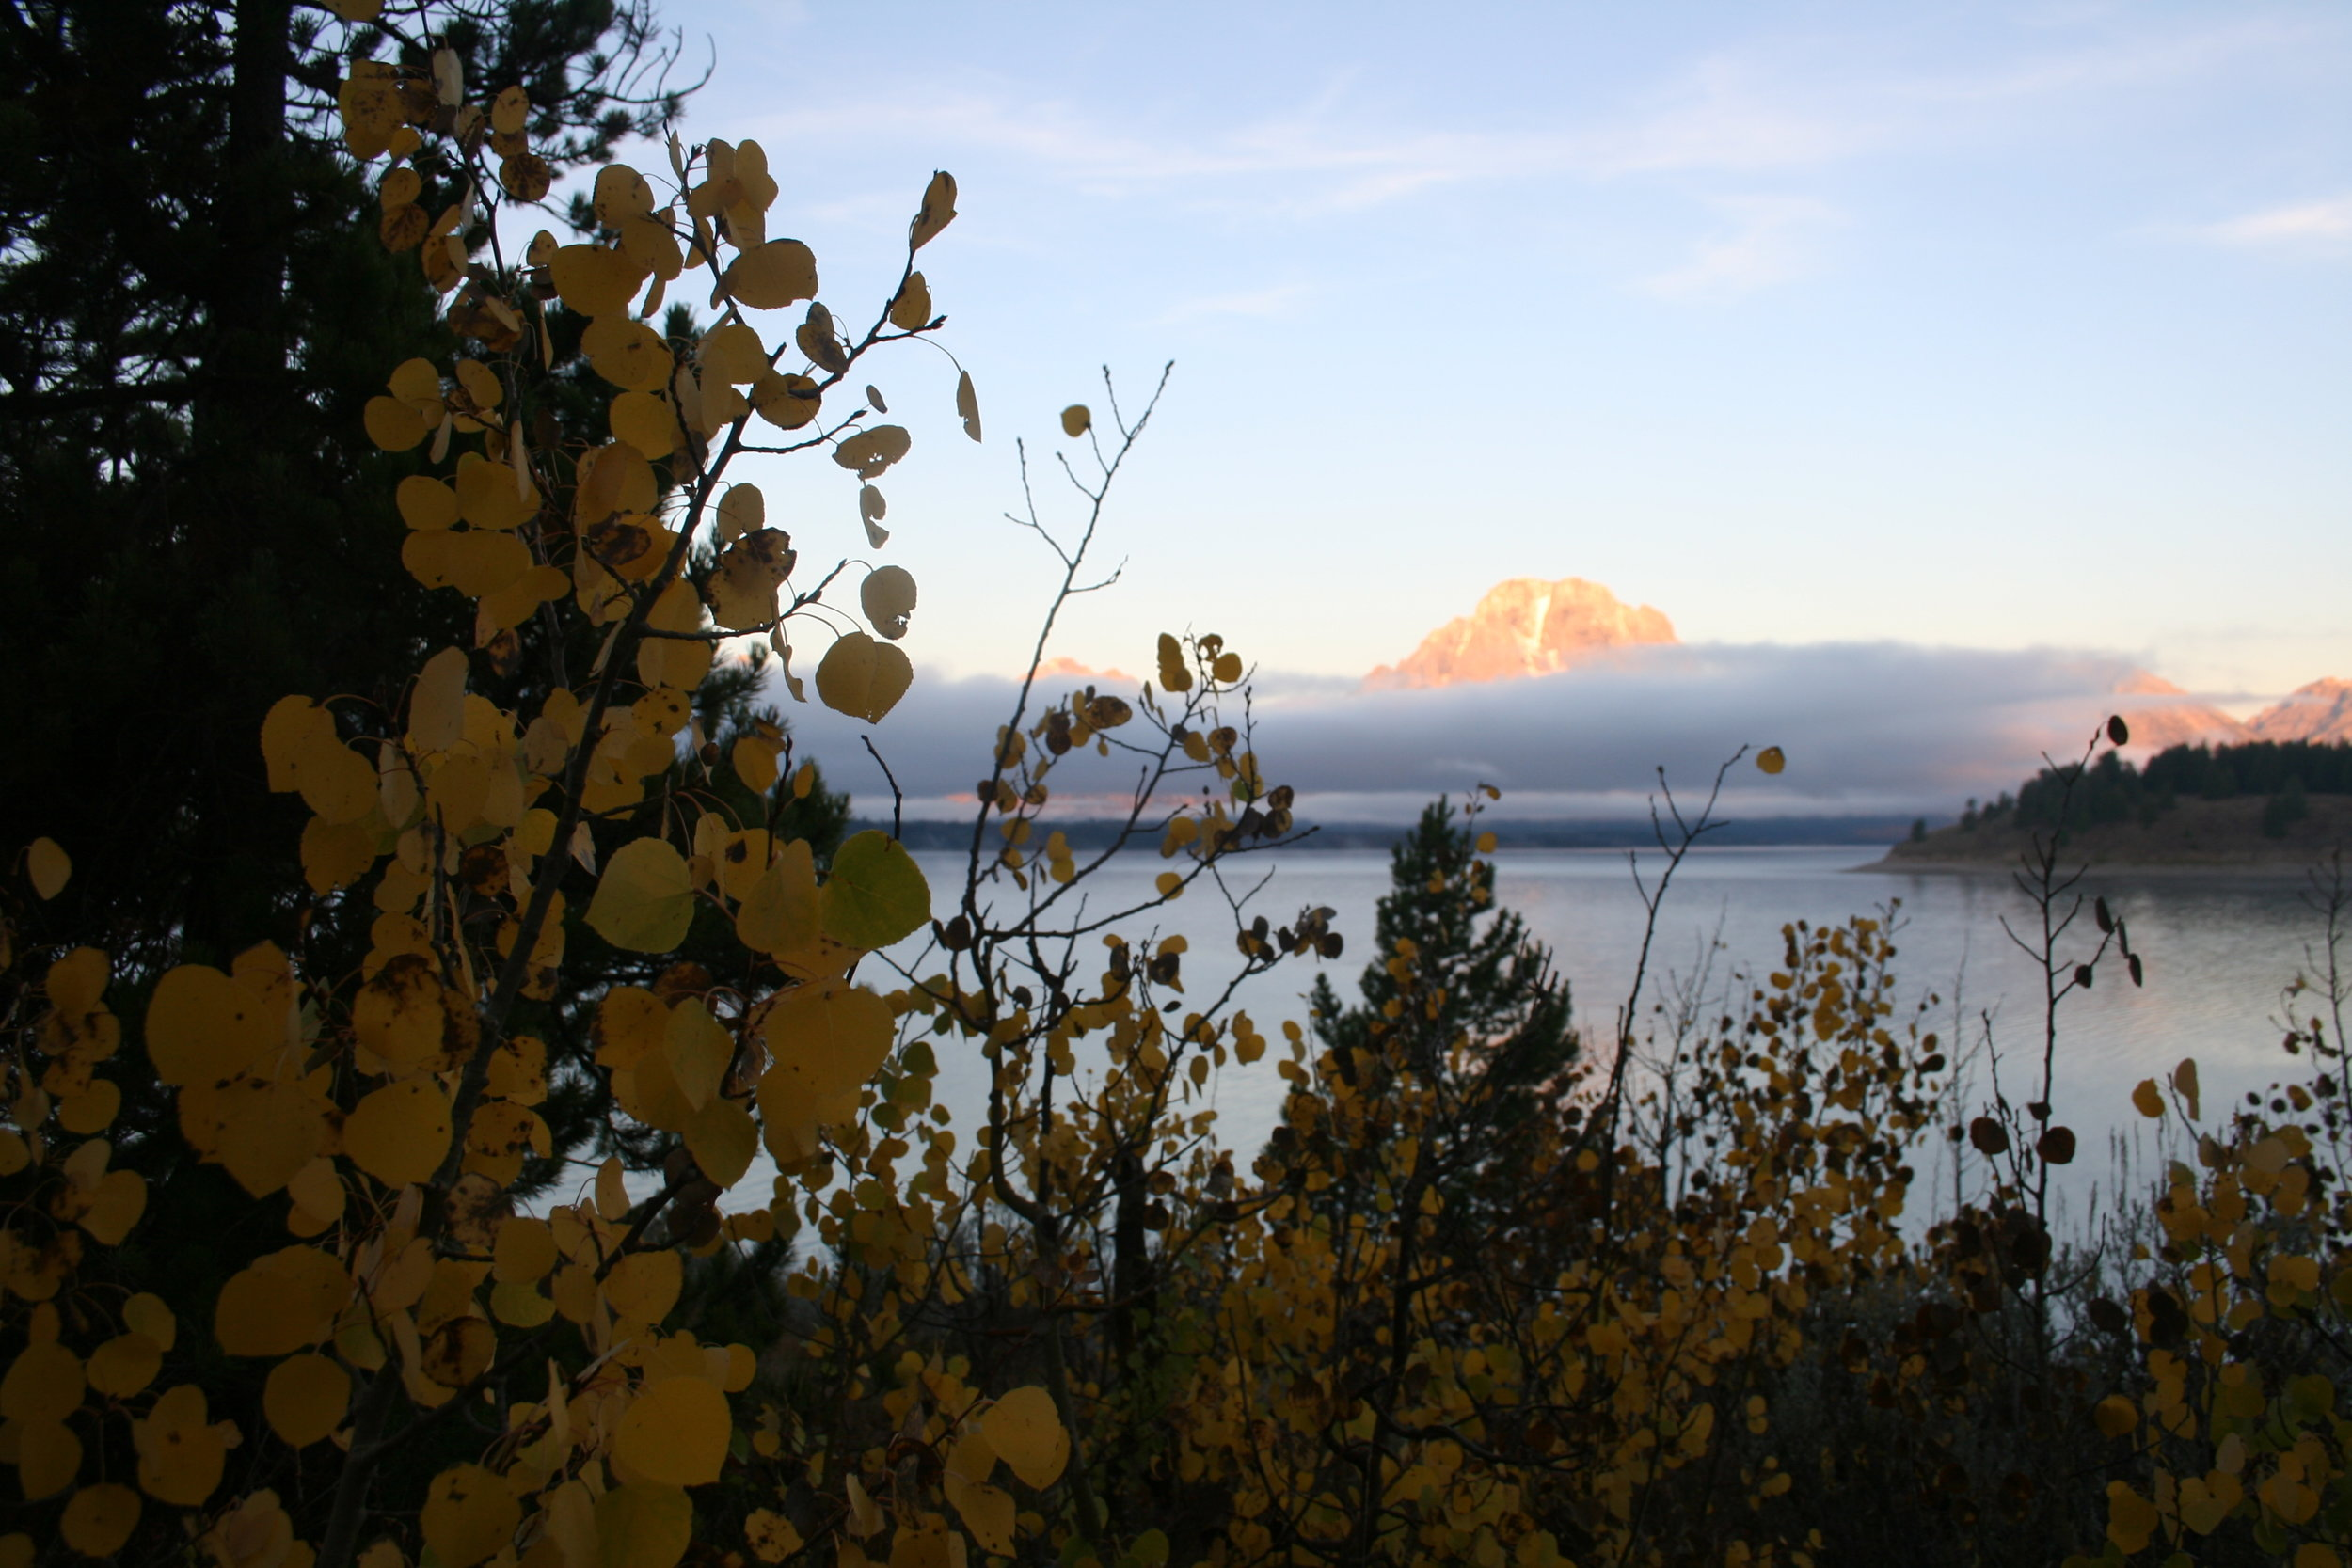 Cottonwood by the lake, camping in the Grand Tetons, WY (I call all the Populus species Cottonwood)